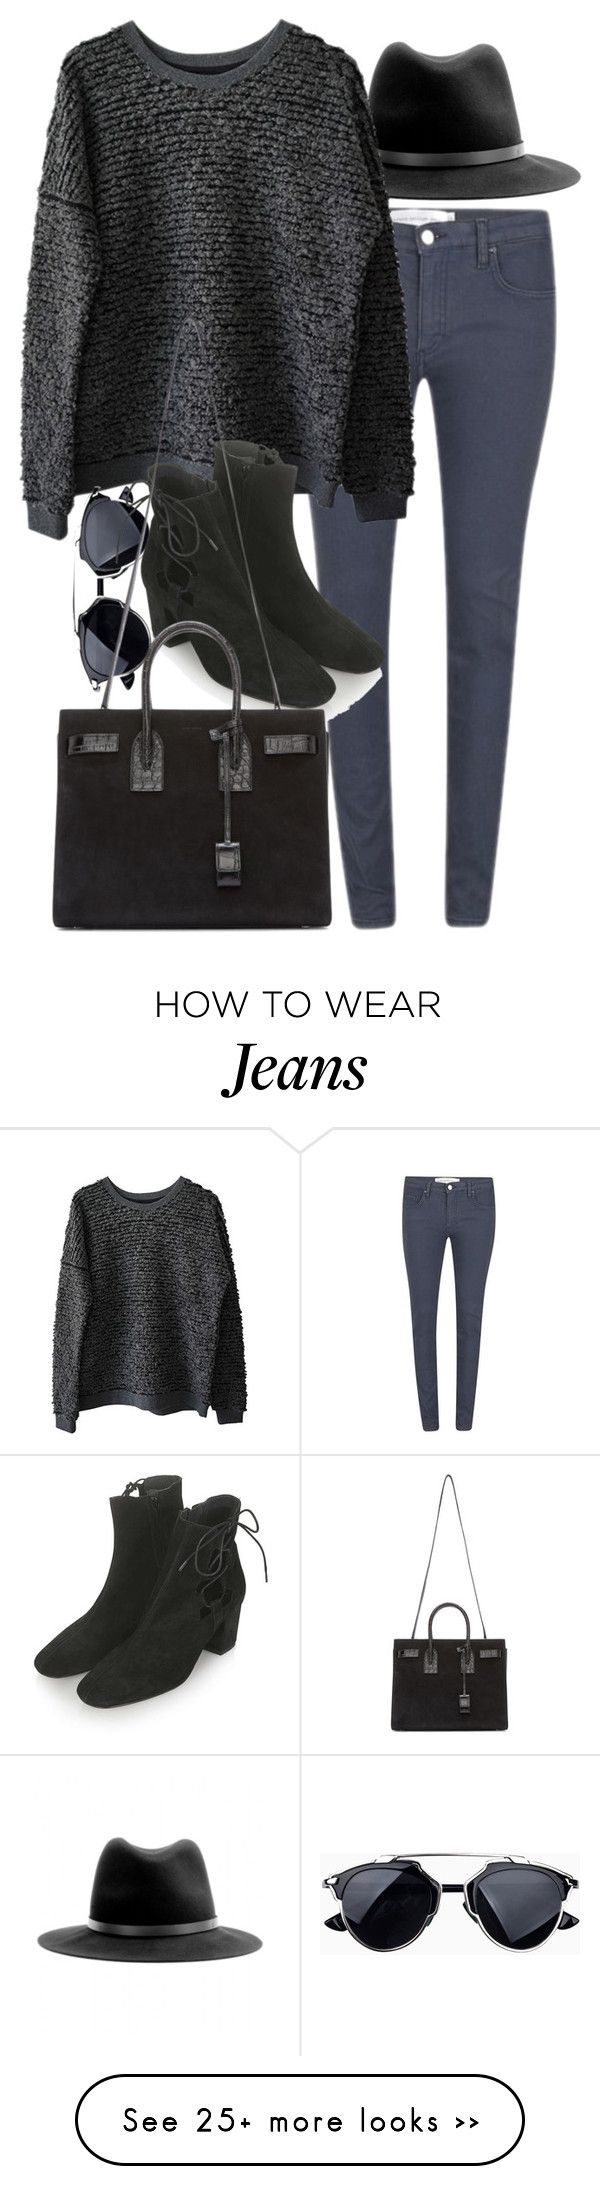 """Untitled #7197"" by nikka-phillips on Polyvore featuring rag & bone, Victoria Beckham, Just Female, Topshop and Yves Saint Laurent"